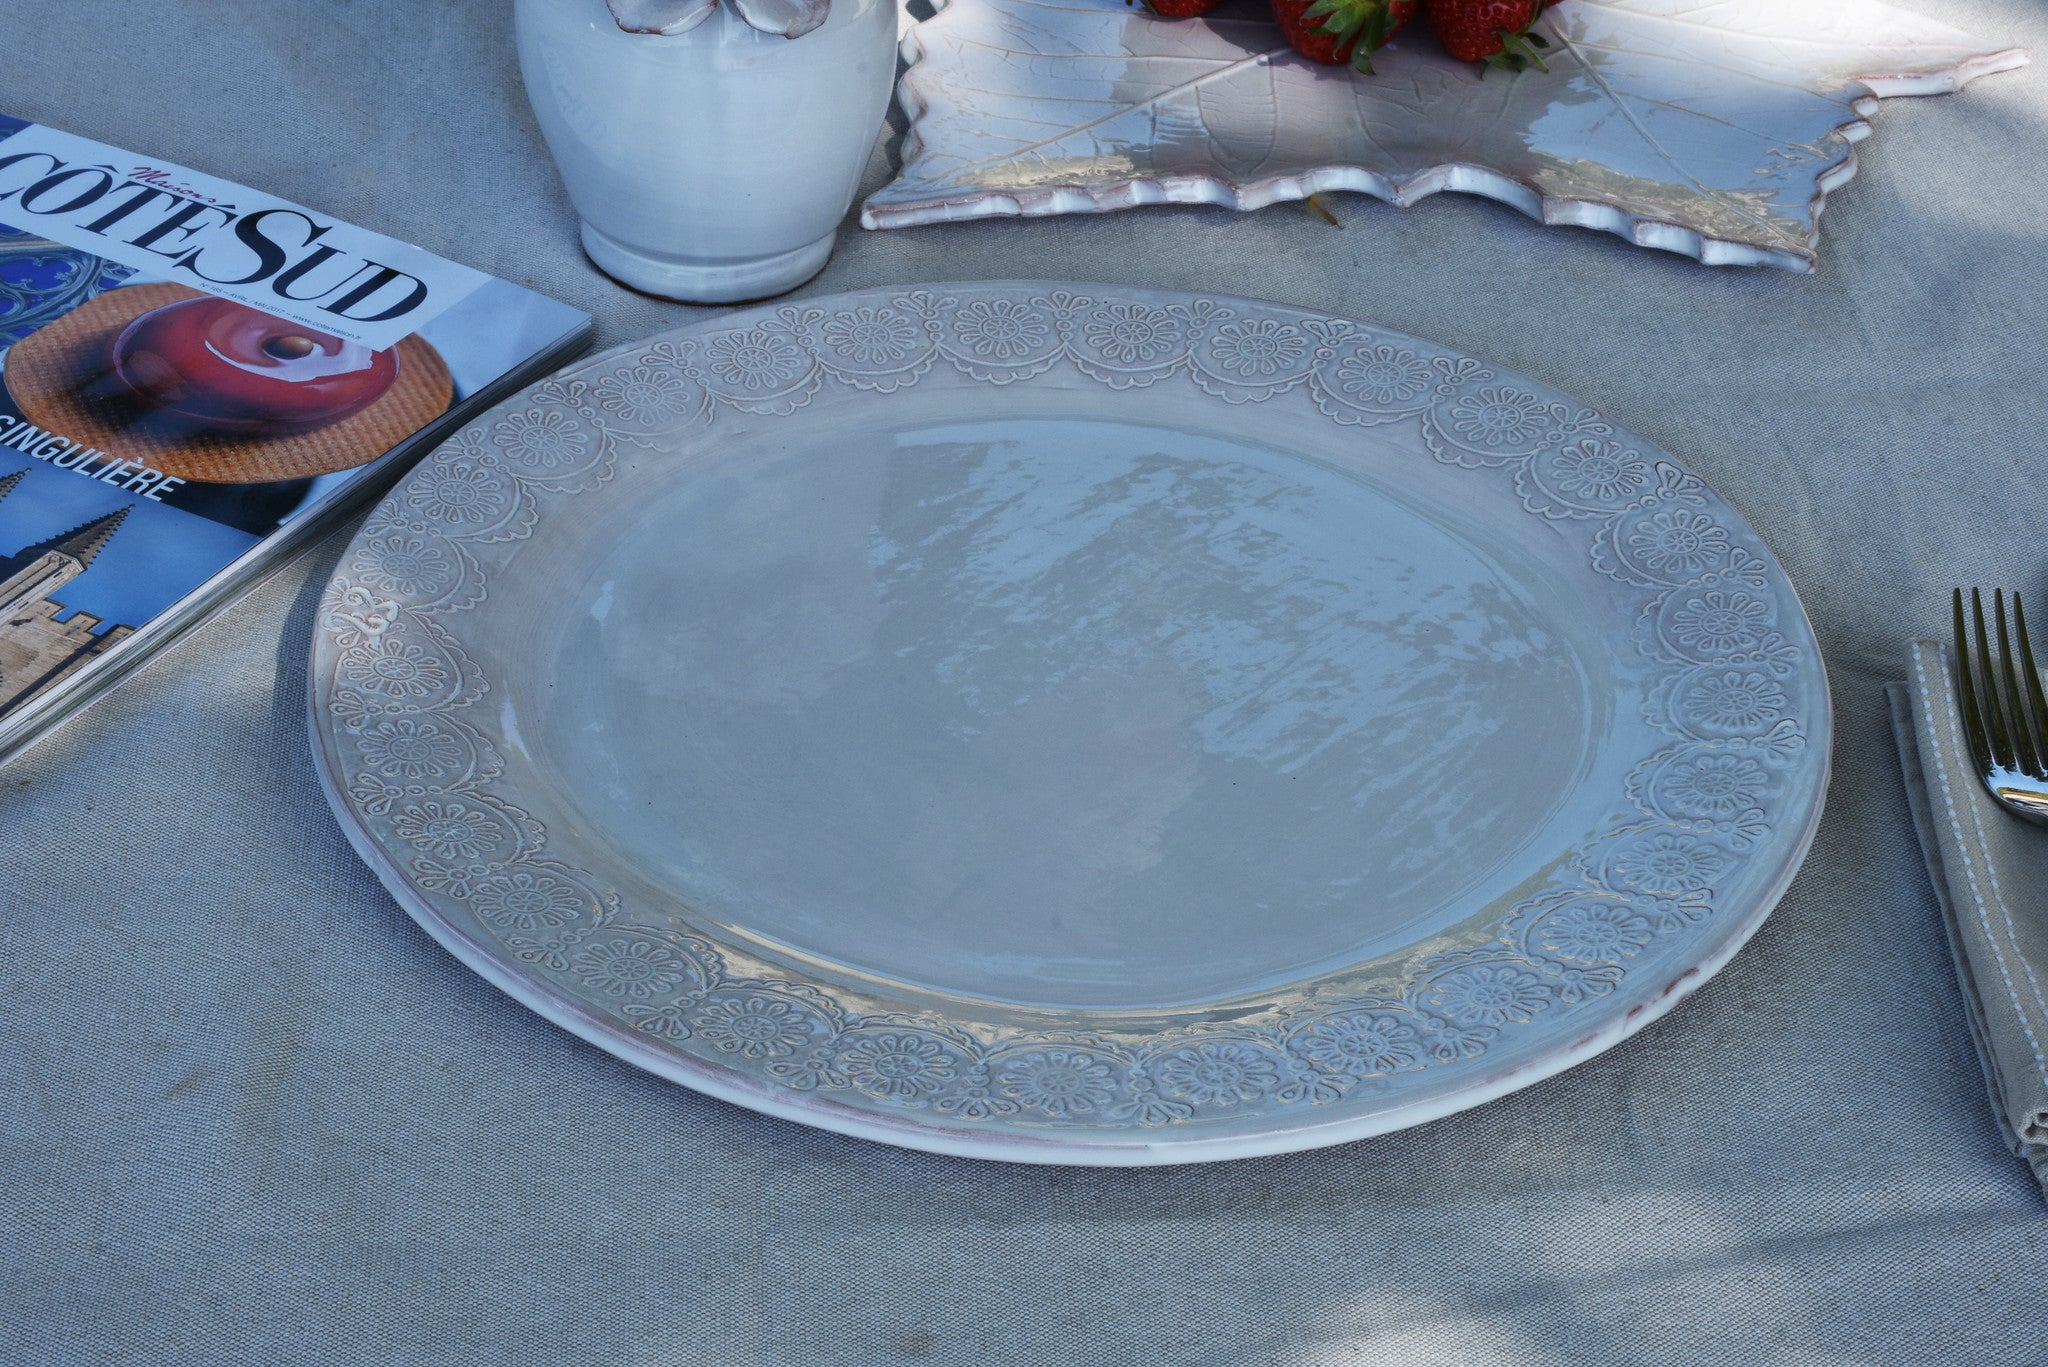 Large dish with pretty lace border